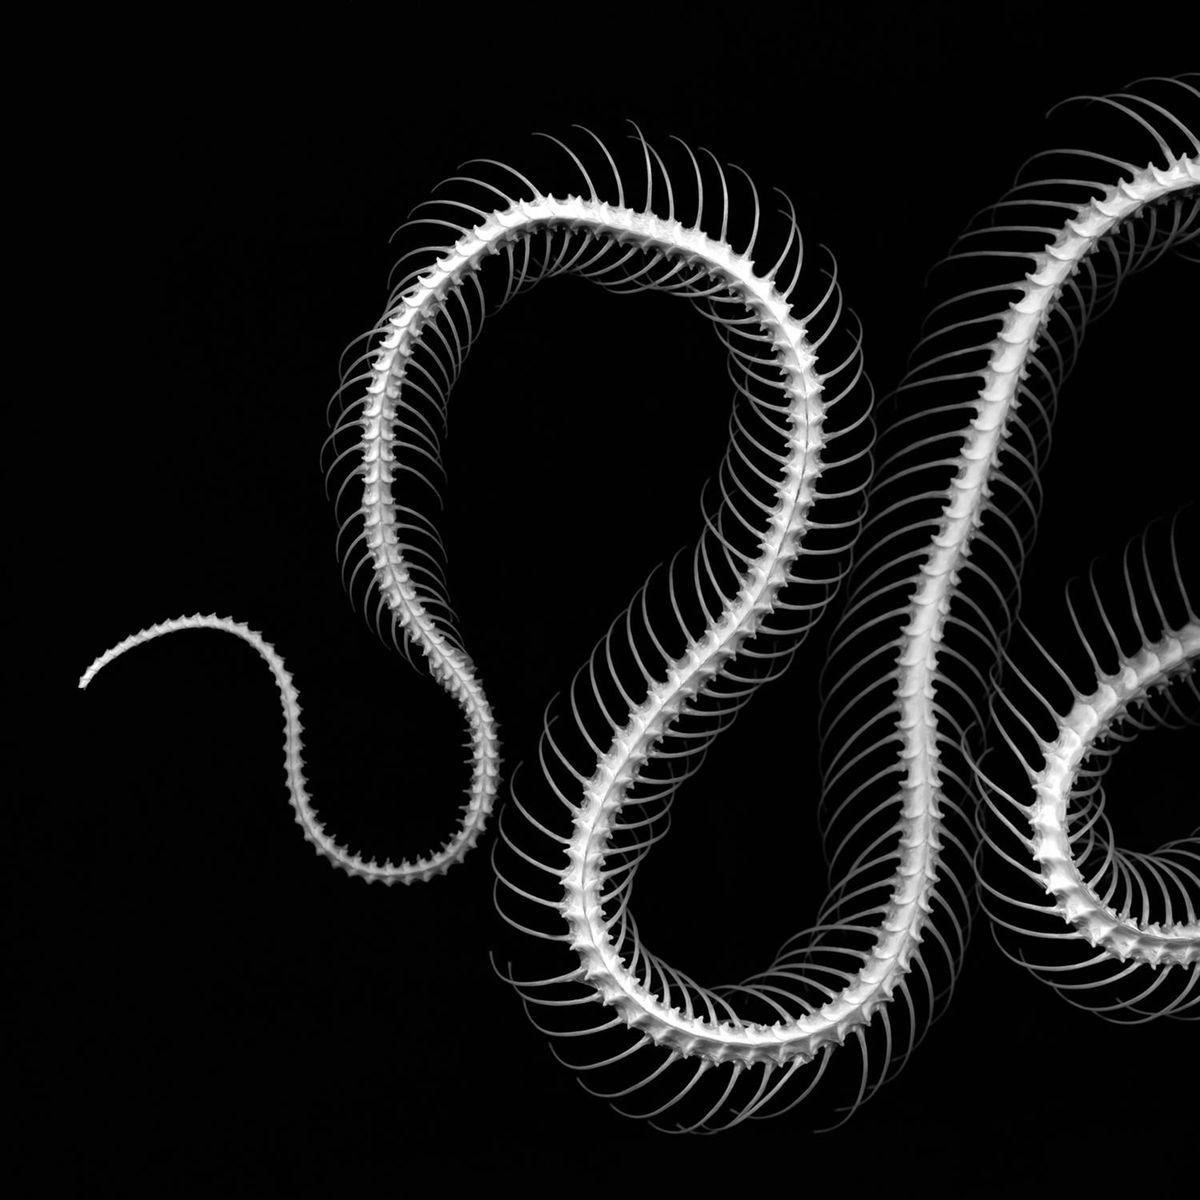 Cobra.I/II/III (triptych)© 2011. (First image.) Each size: 20 x 20 in. Each image on 30 x 36 paper. Carbon pigment print.